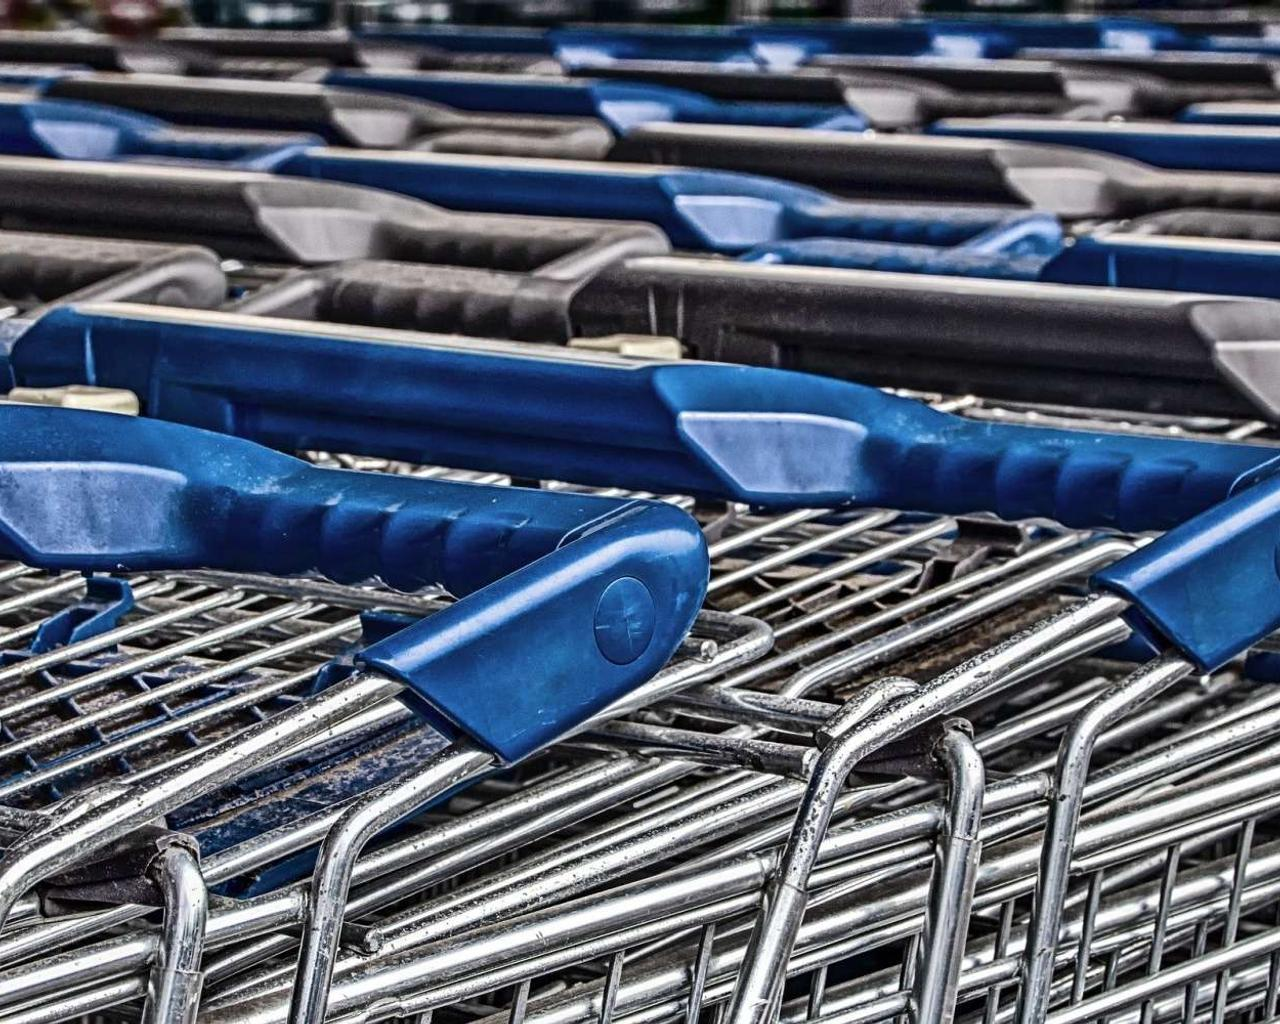 Walmart To Have Carts That Will Watch And Track Your Every Move—Retail Version Of Big Brother